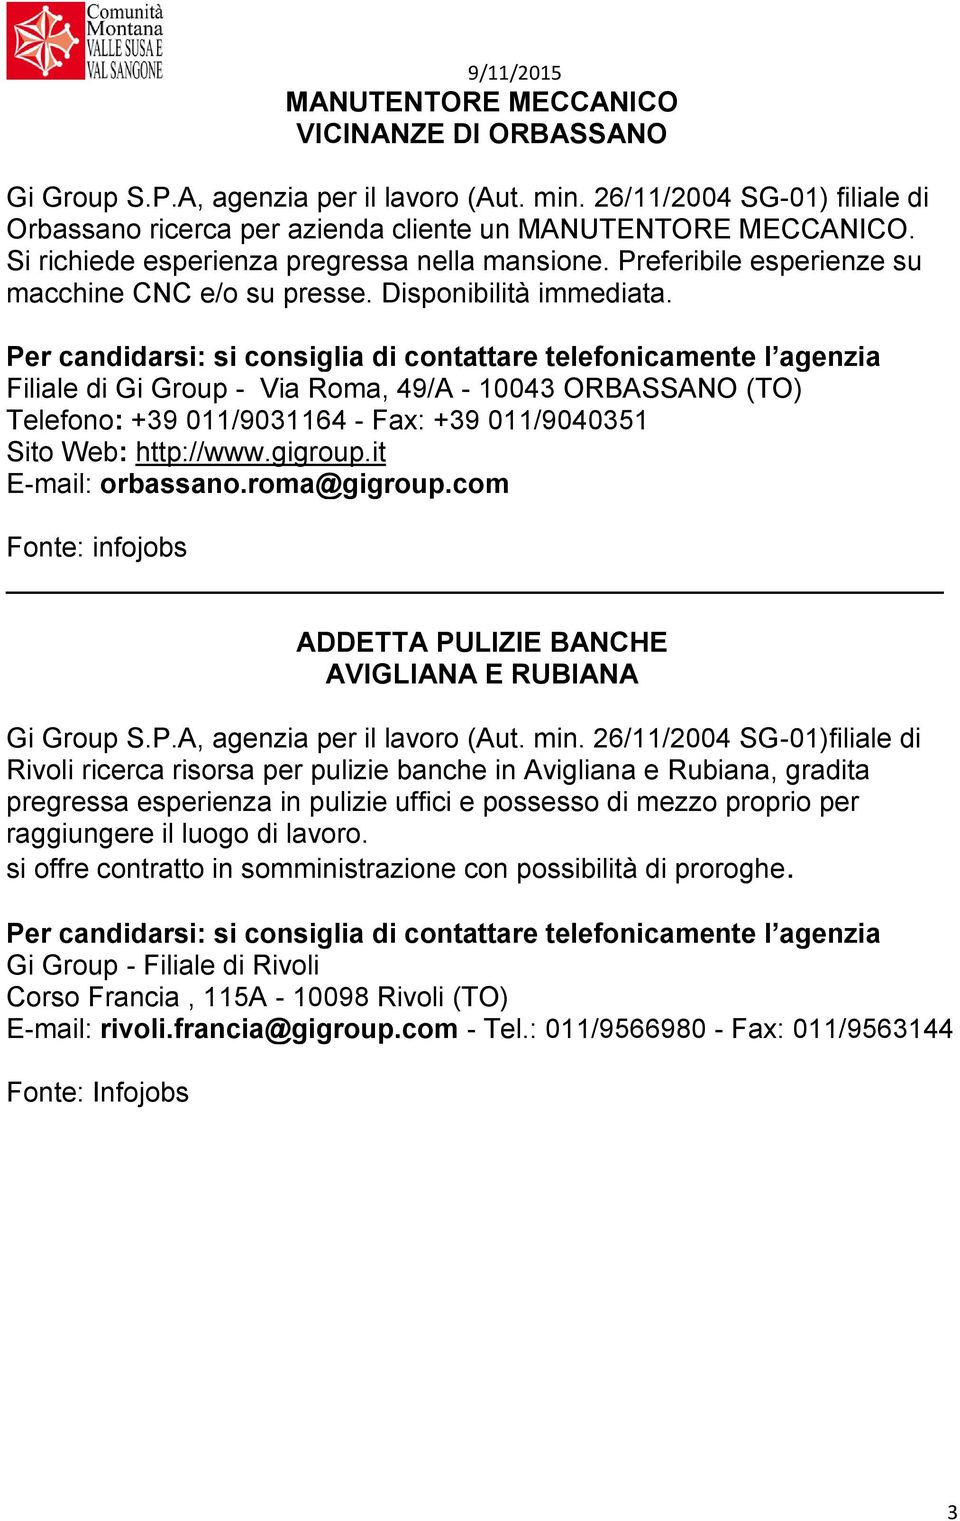 Filiale di Gi Group - Via Roma, 49/A - 10043 ORBASSANO (TO) Telefono: +39 011/9031164 - Fax: +39 011/9040351 Sito Web: http://www.gigroup.it E-mail: orbassano.roma@gigroup.